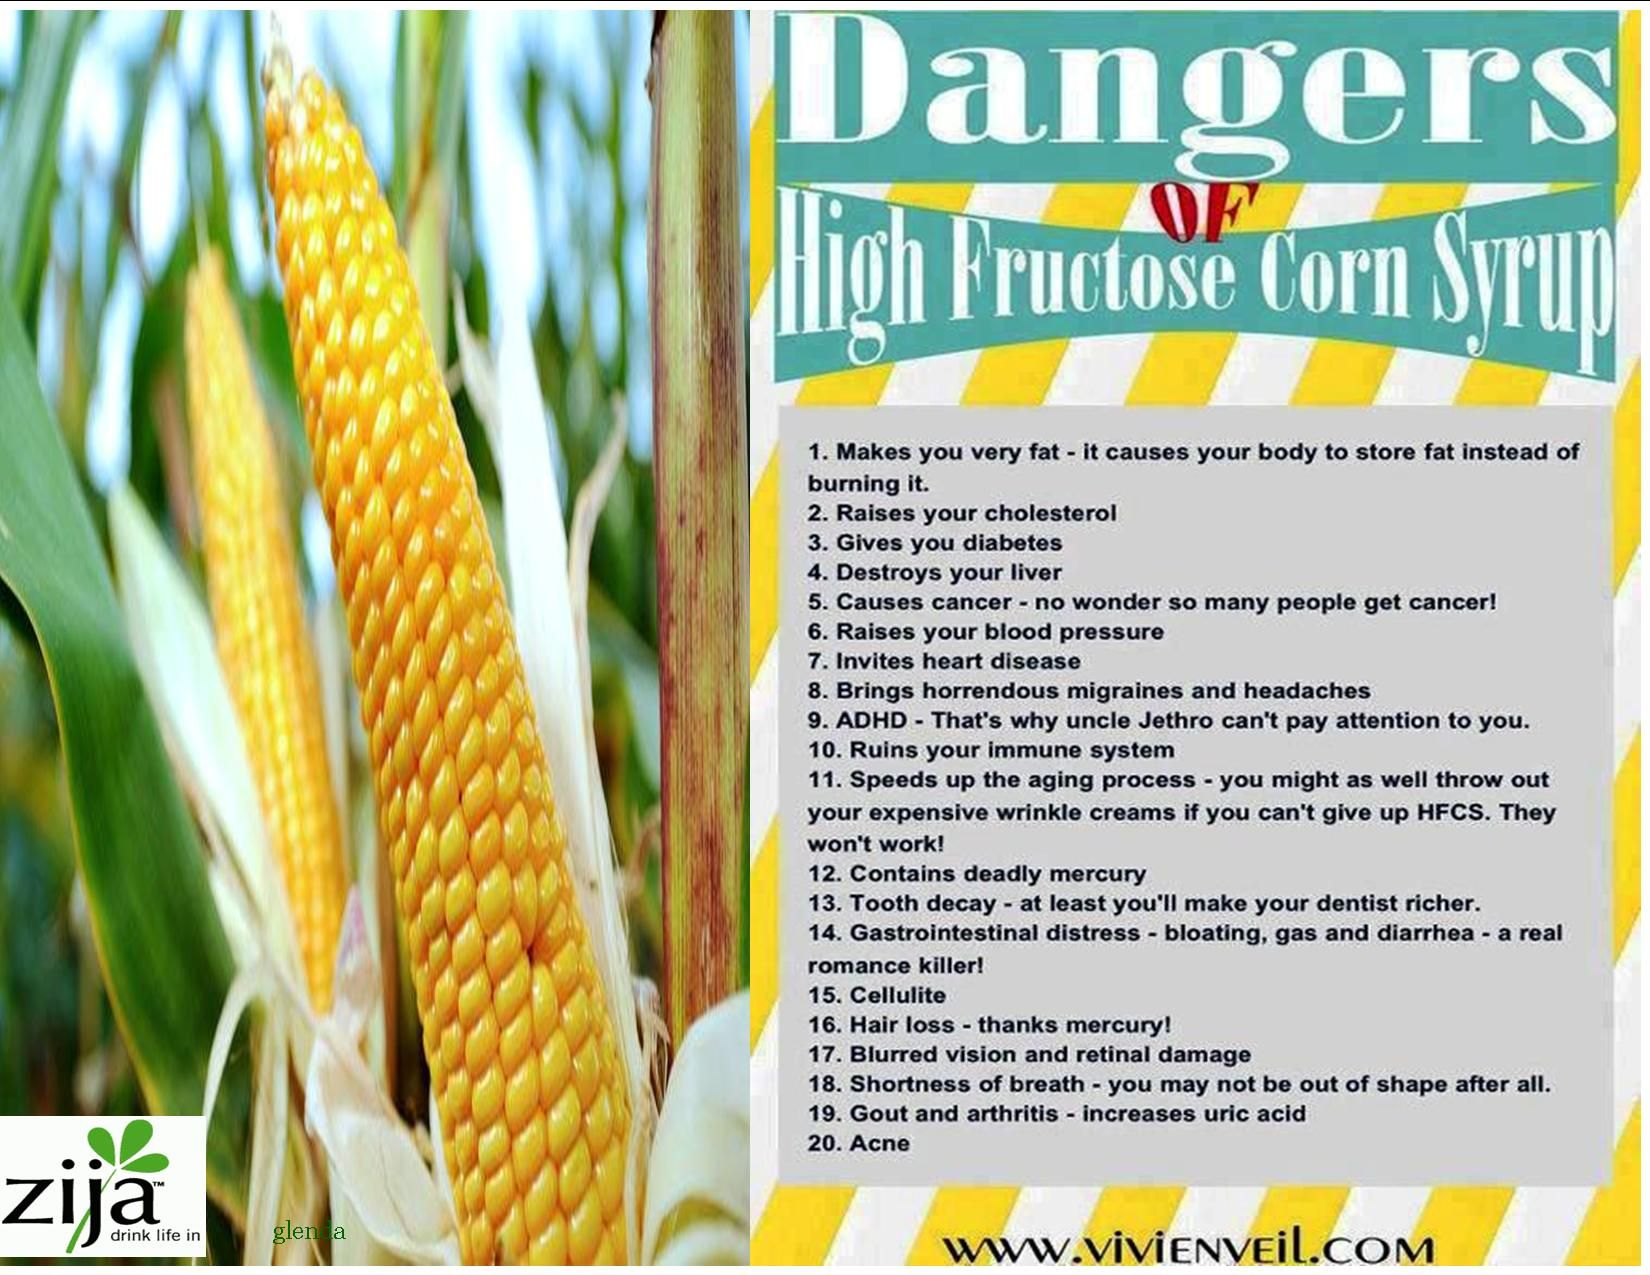 Dangers of High Fructose Corn Syrup | A.Zija | Pinterest